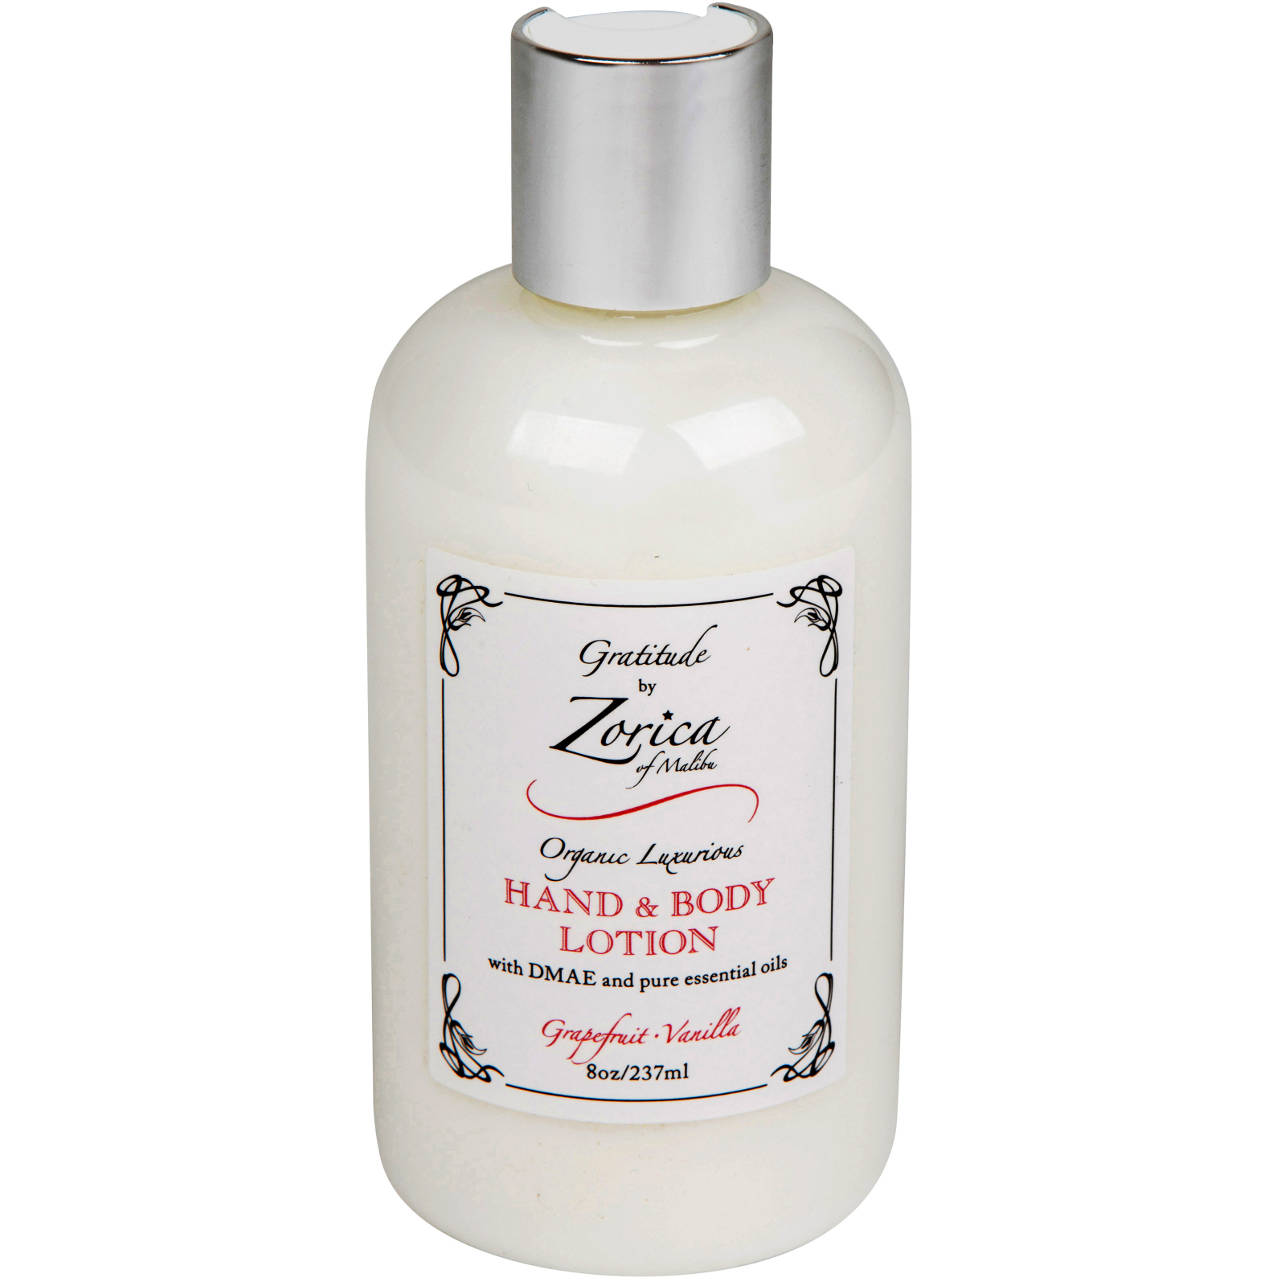 Gratitude Luxurious Hand and Body Lotion